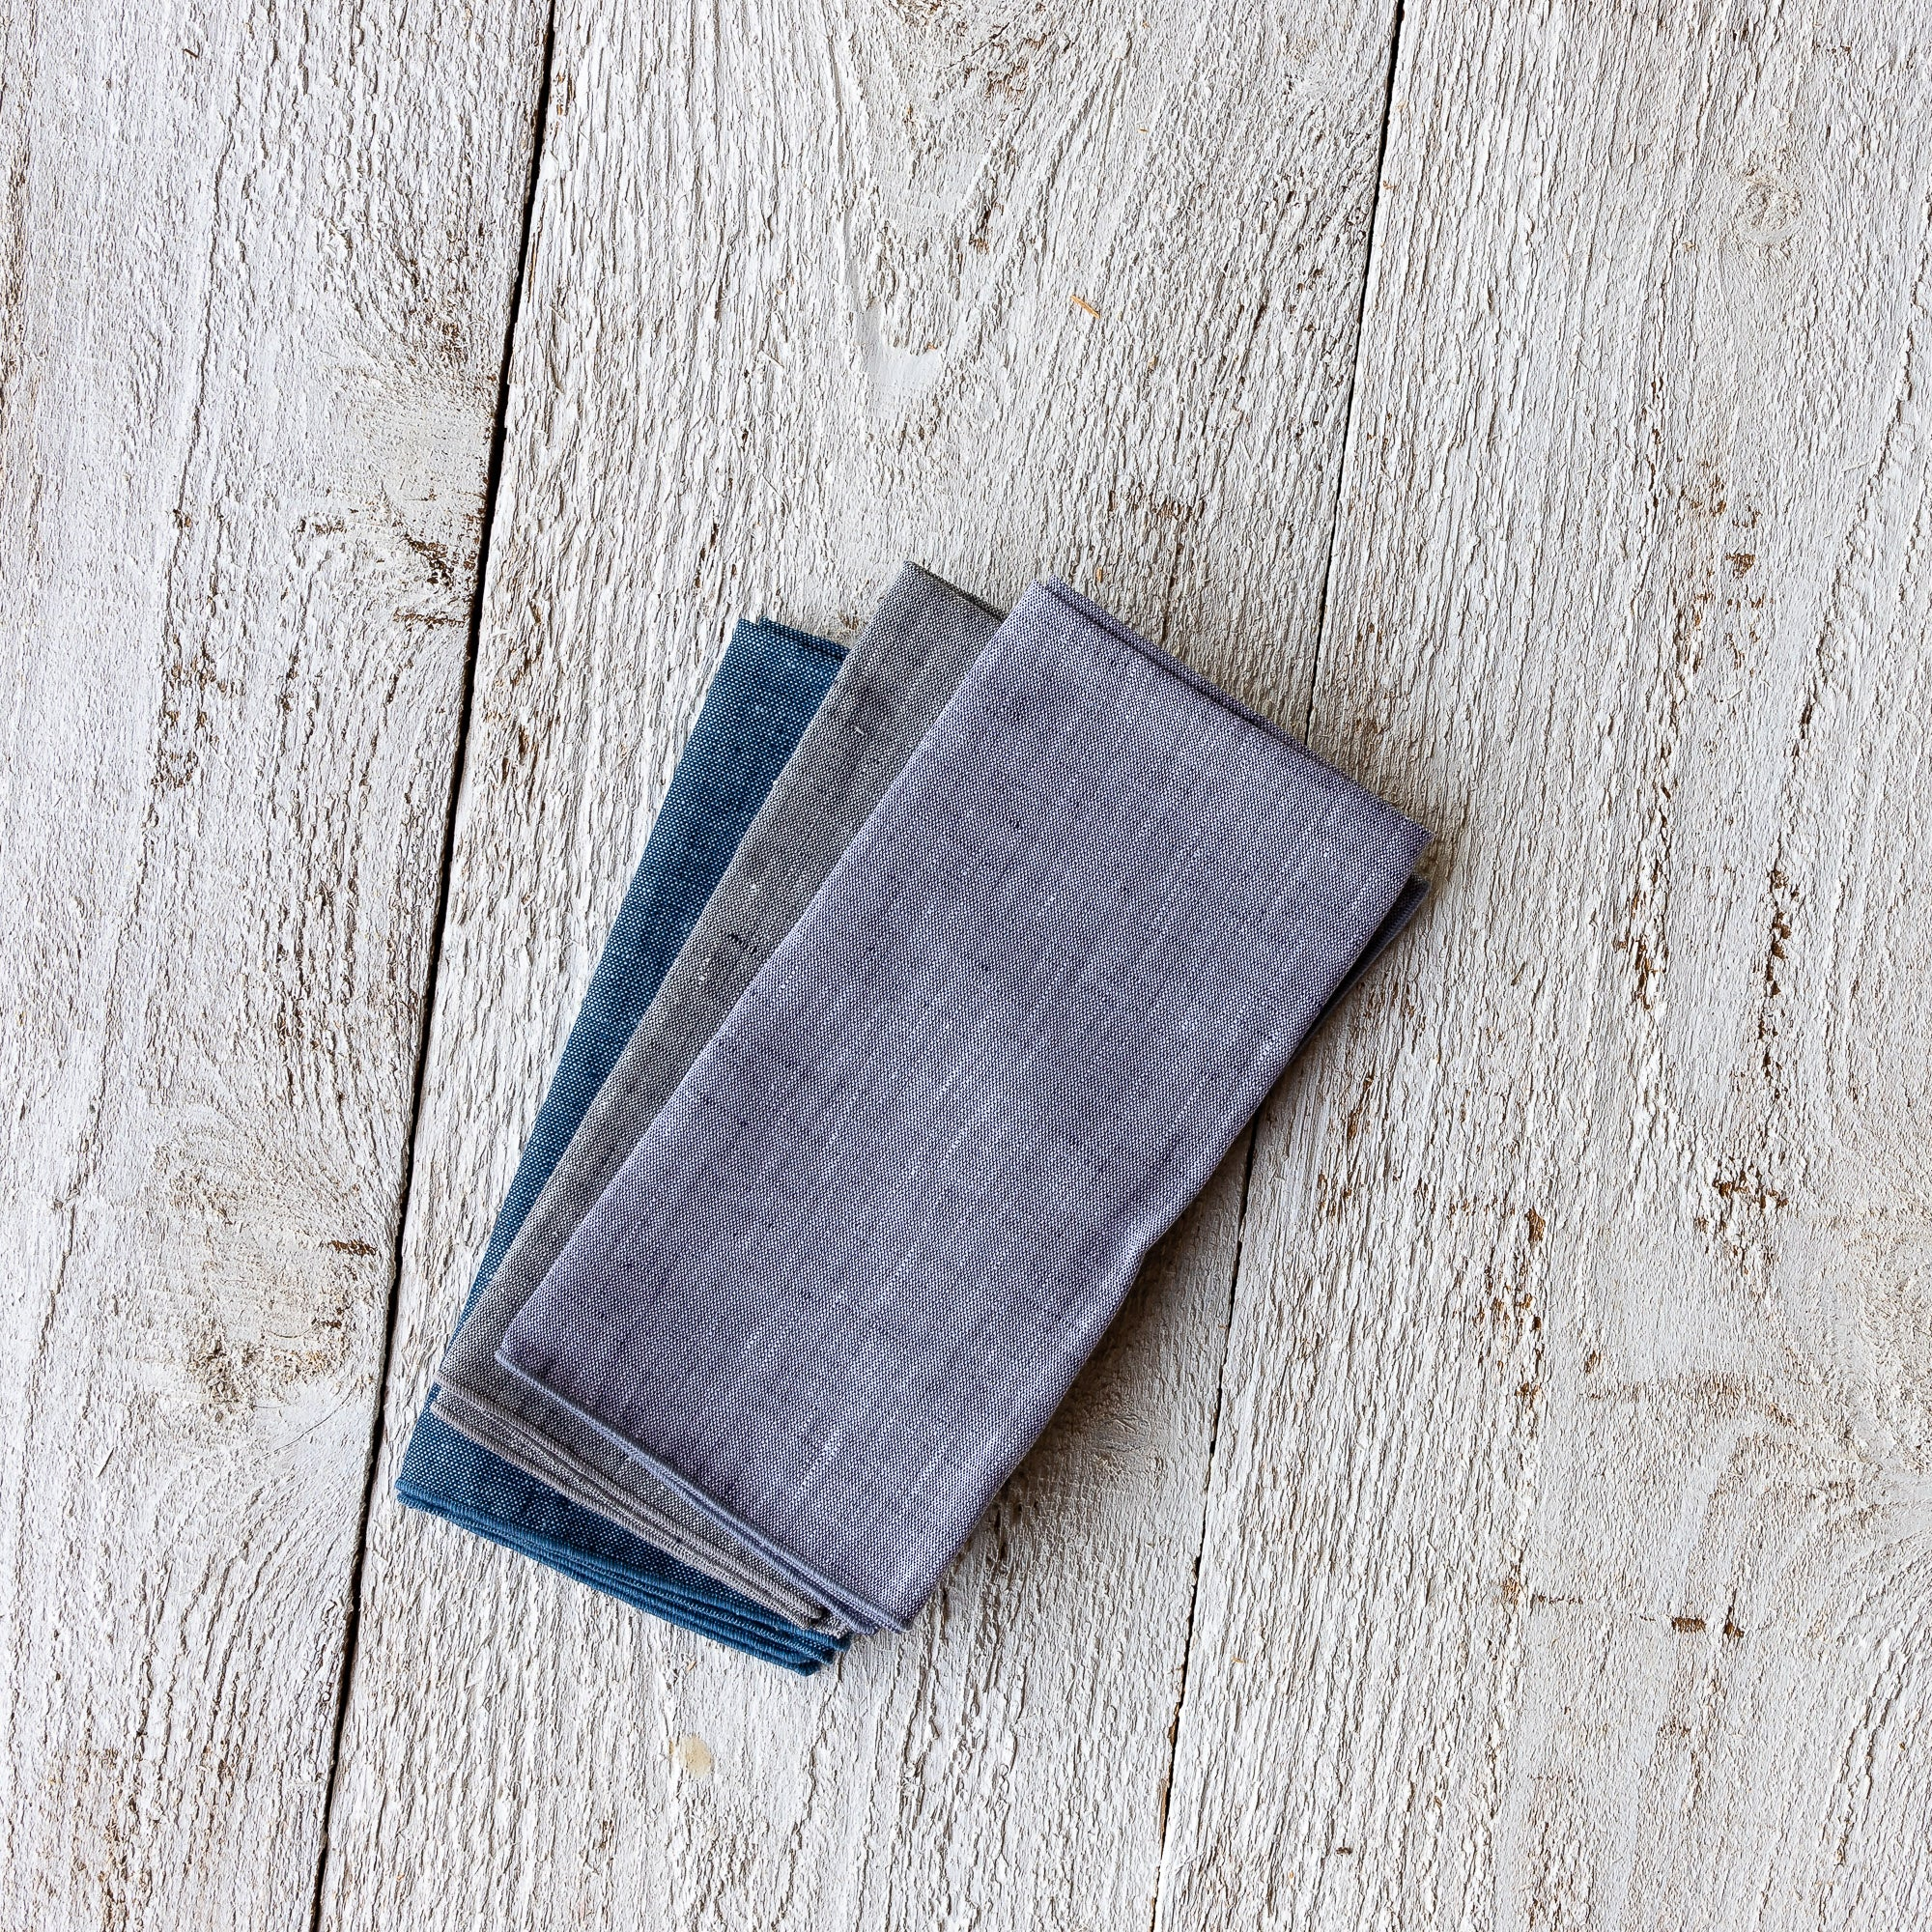 Three Handmade 100% European Chambray Linen Napkins - Sold by Chic & Basta